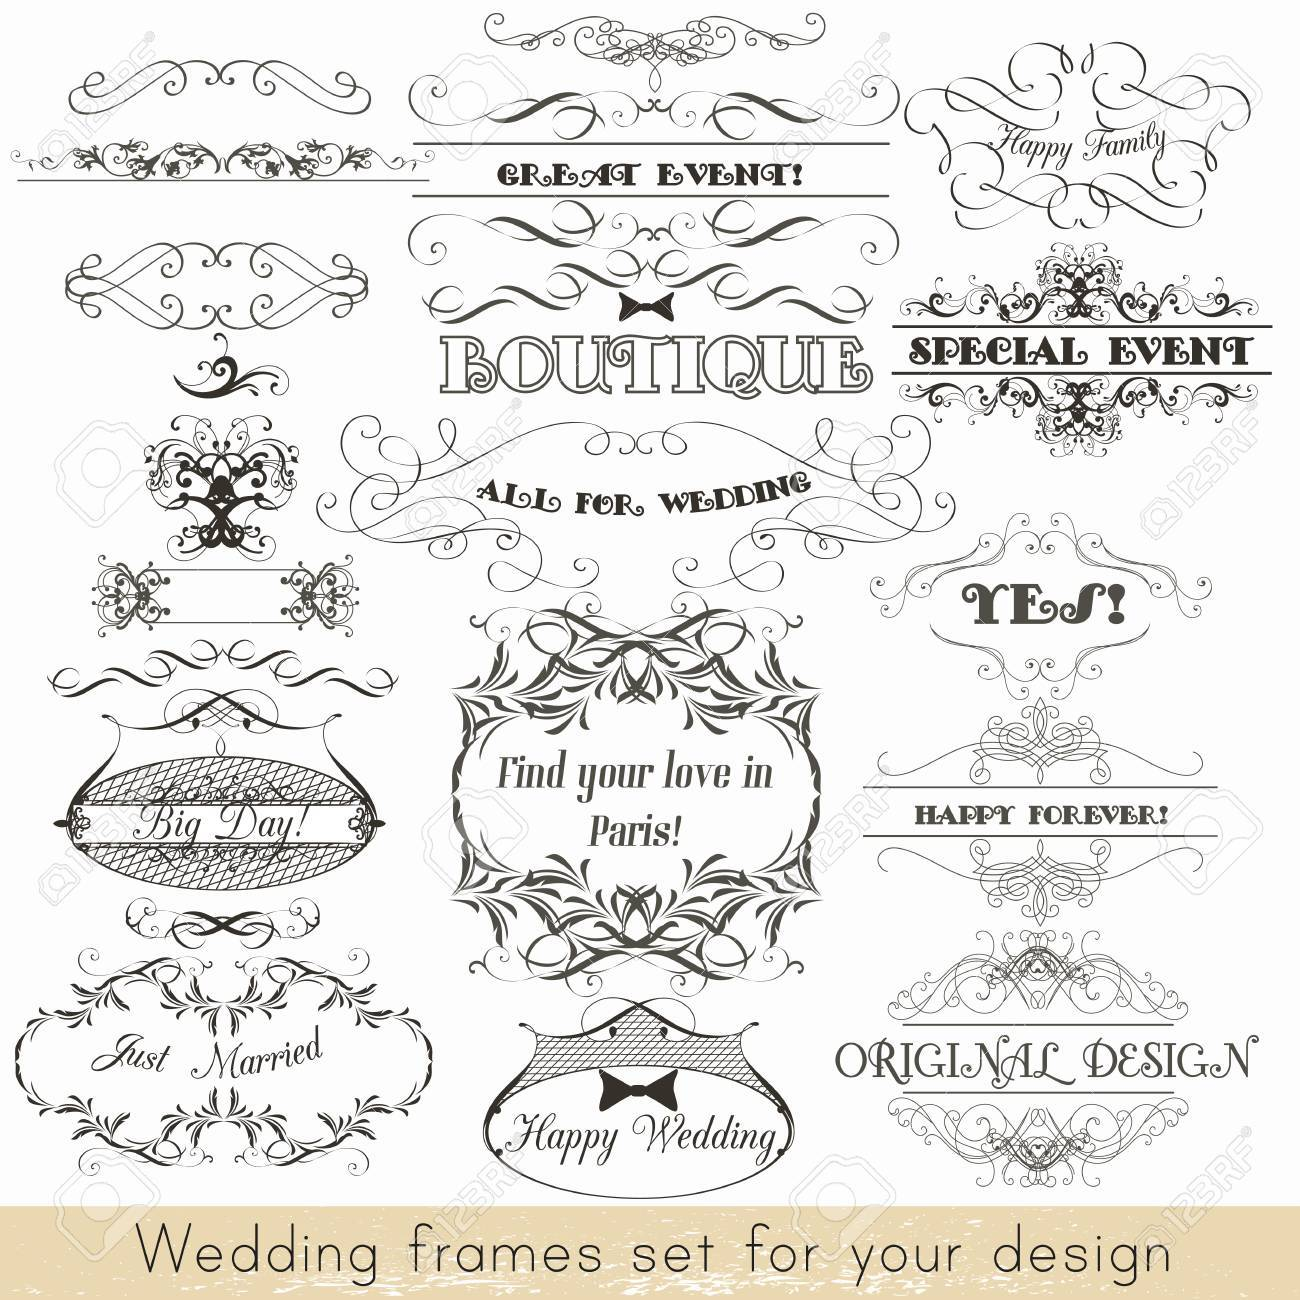 Collection of vector decorative frames for wedding invitations collection of vector decorative frames for wedding invitations design stock vector 44492001 junglespirit Image collections